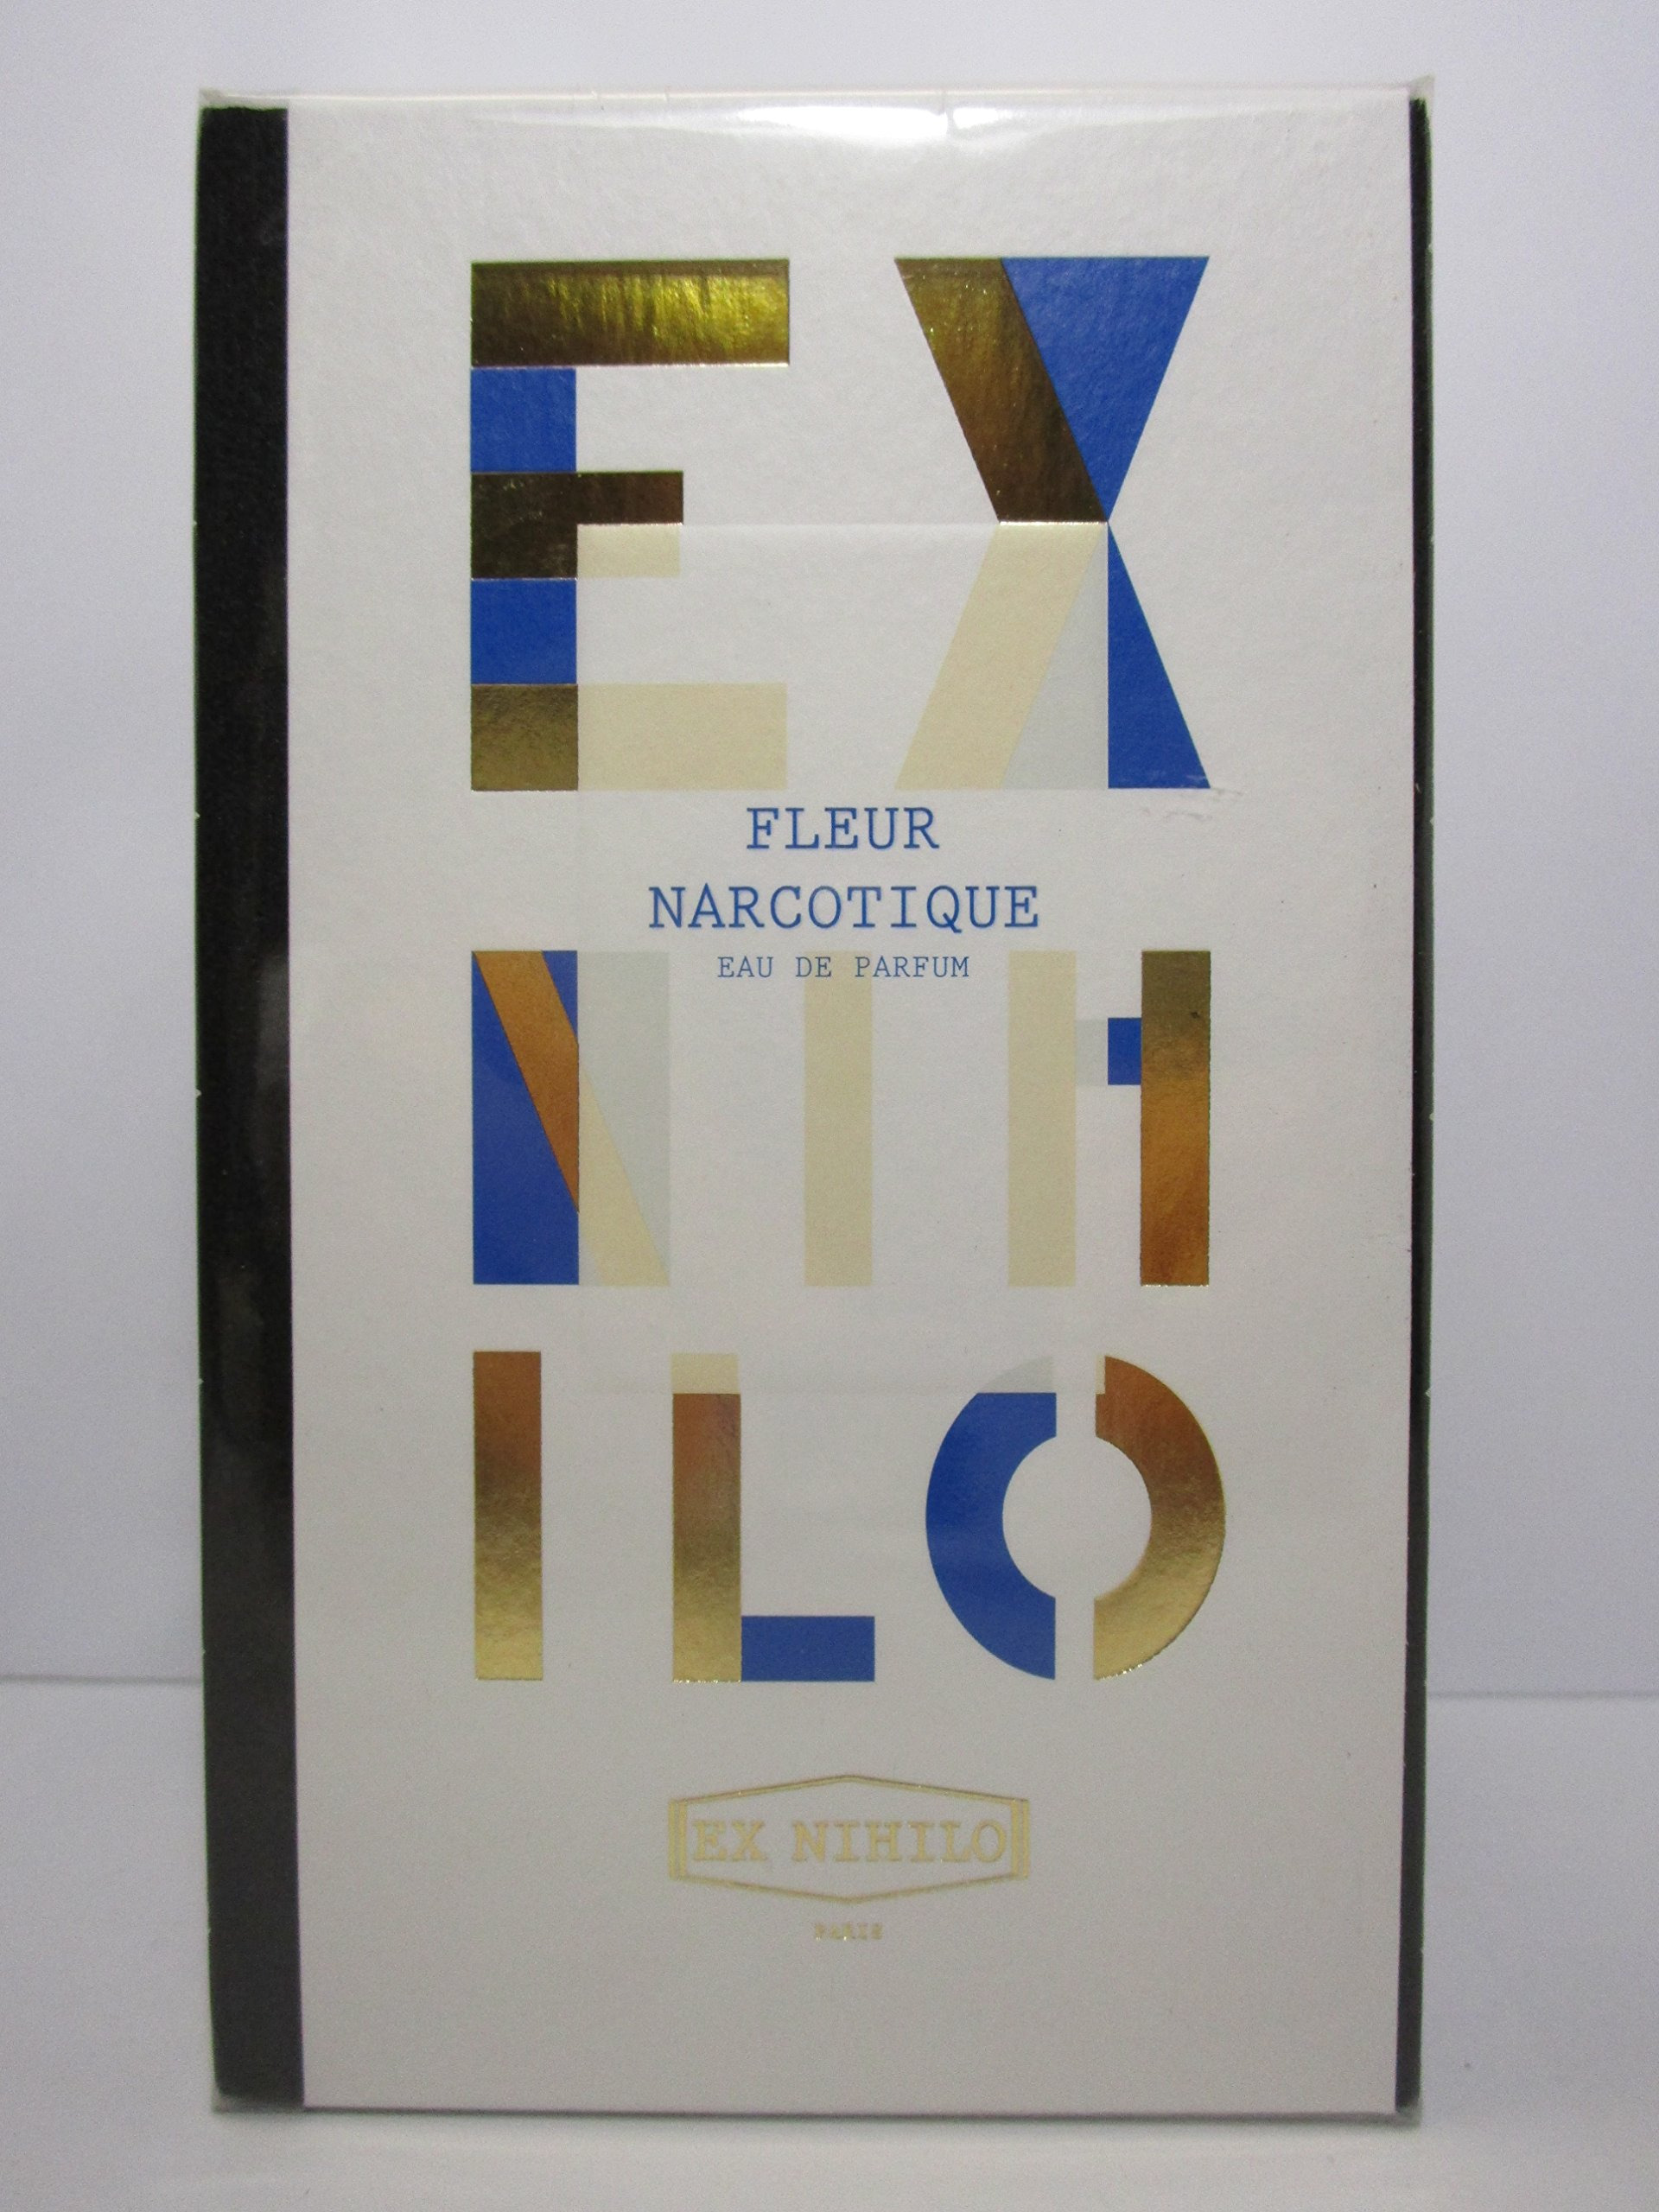 EX NIHILO FLEUR NARCOTIQUE Eau De Parfum Spray UNISEX 3.3 Oz / 100 ml BRAND NEW ITEM IN BOX SEALED